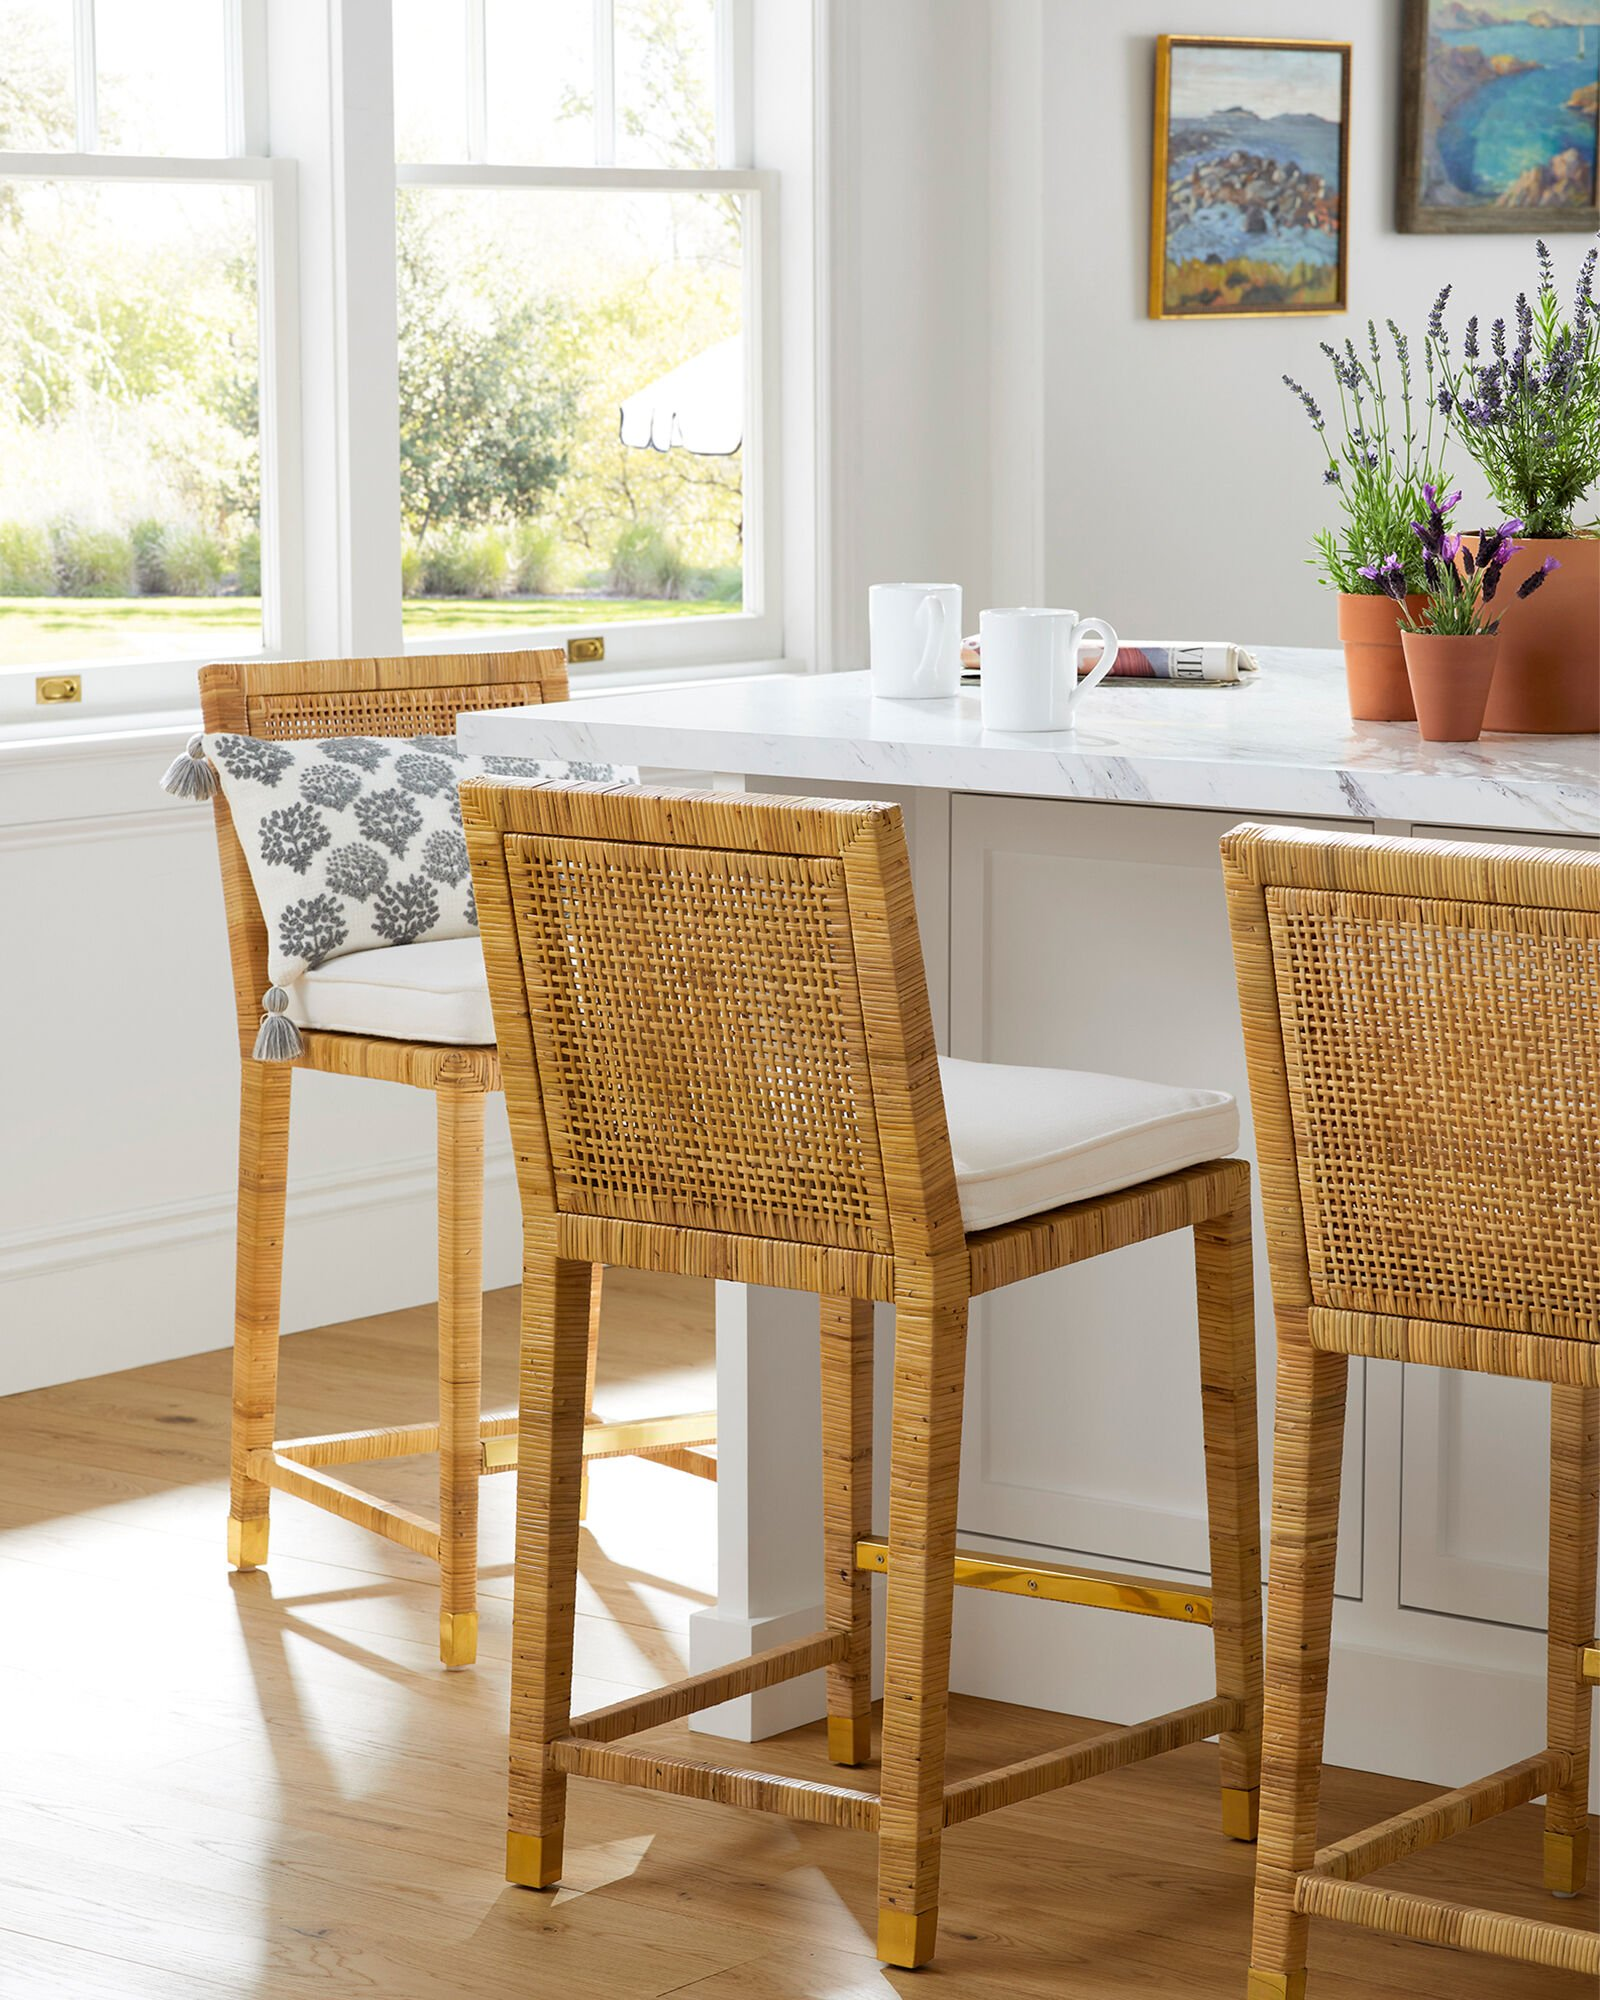 serena and lily rattan mariah counter stool with white cushion and brass leg caps in a white kitchen with wood floors